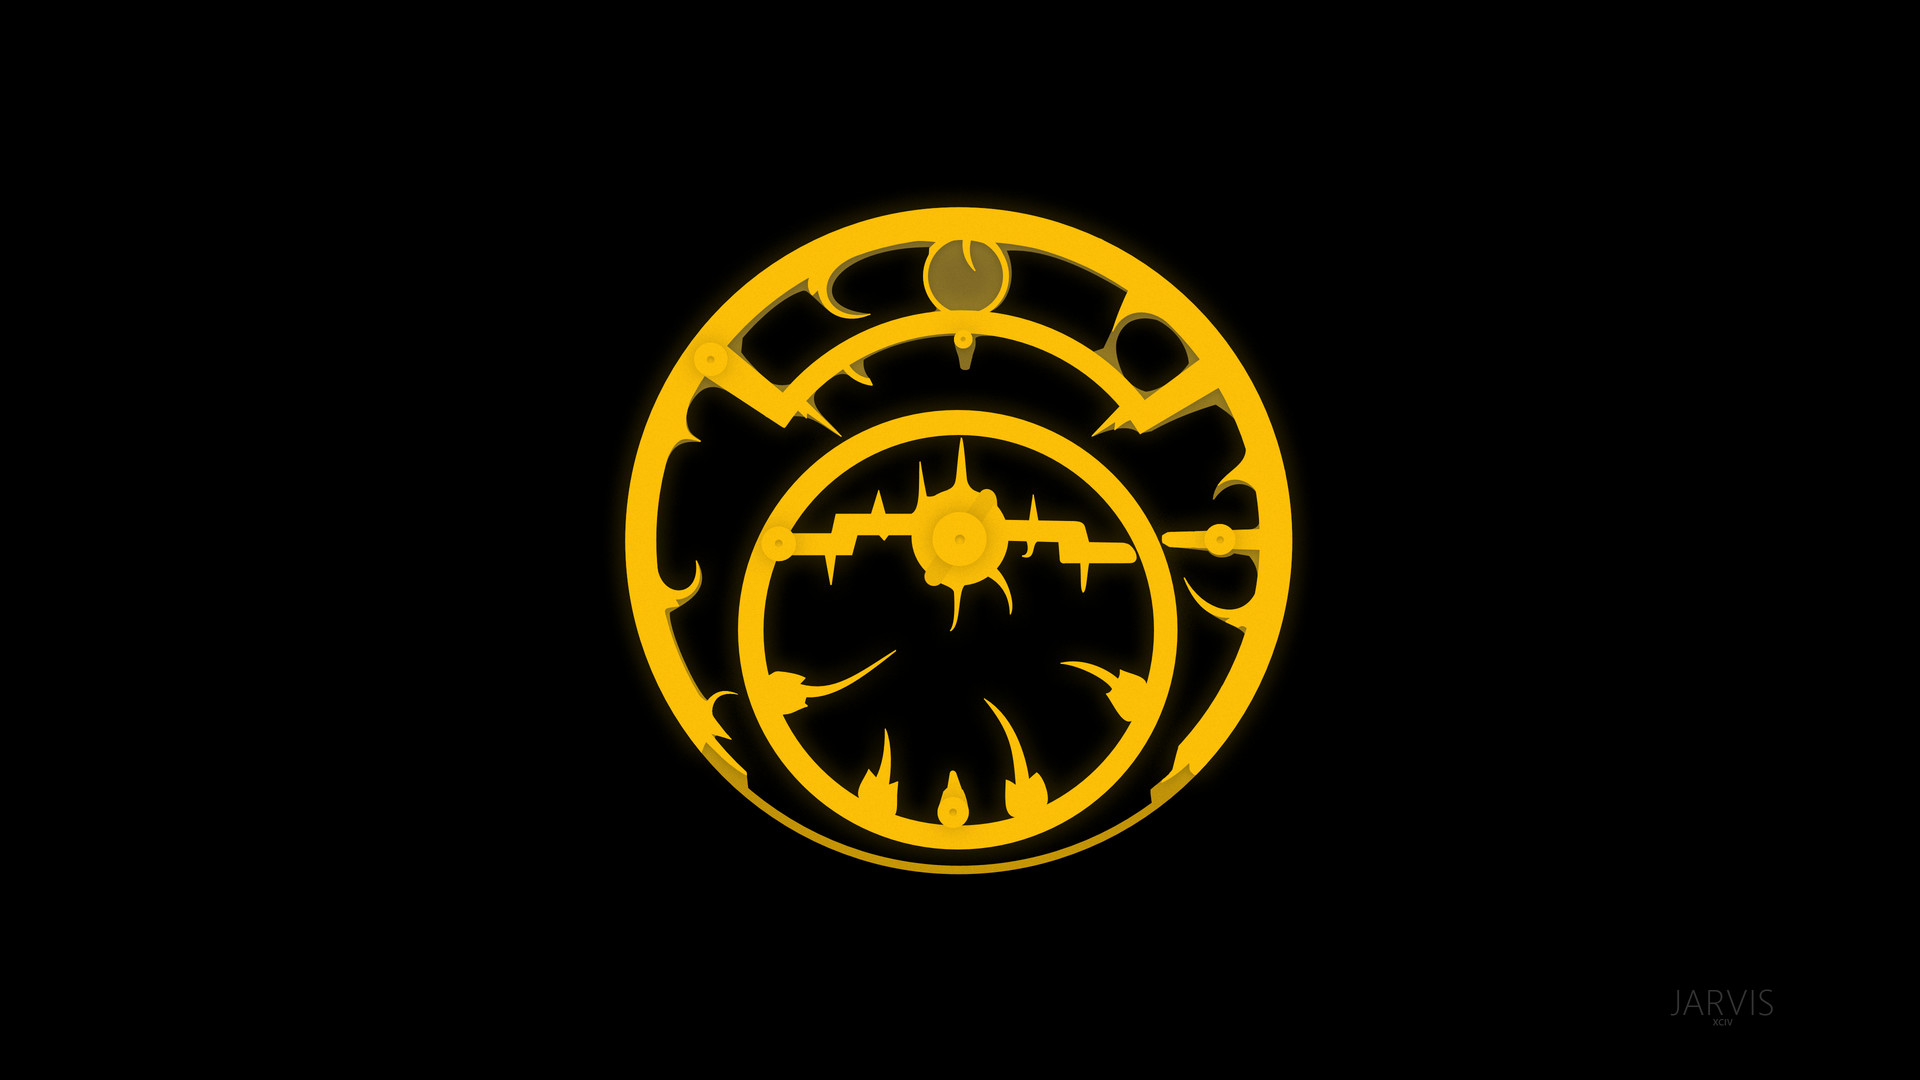 Artstation Prince Of Persia The Sands Of Time Logo Wallpaper